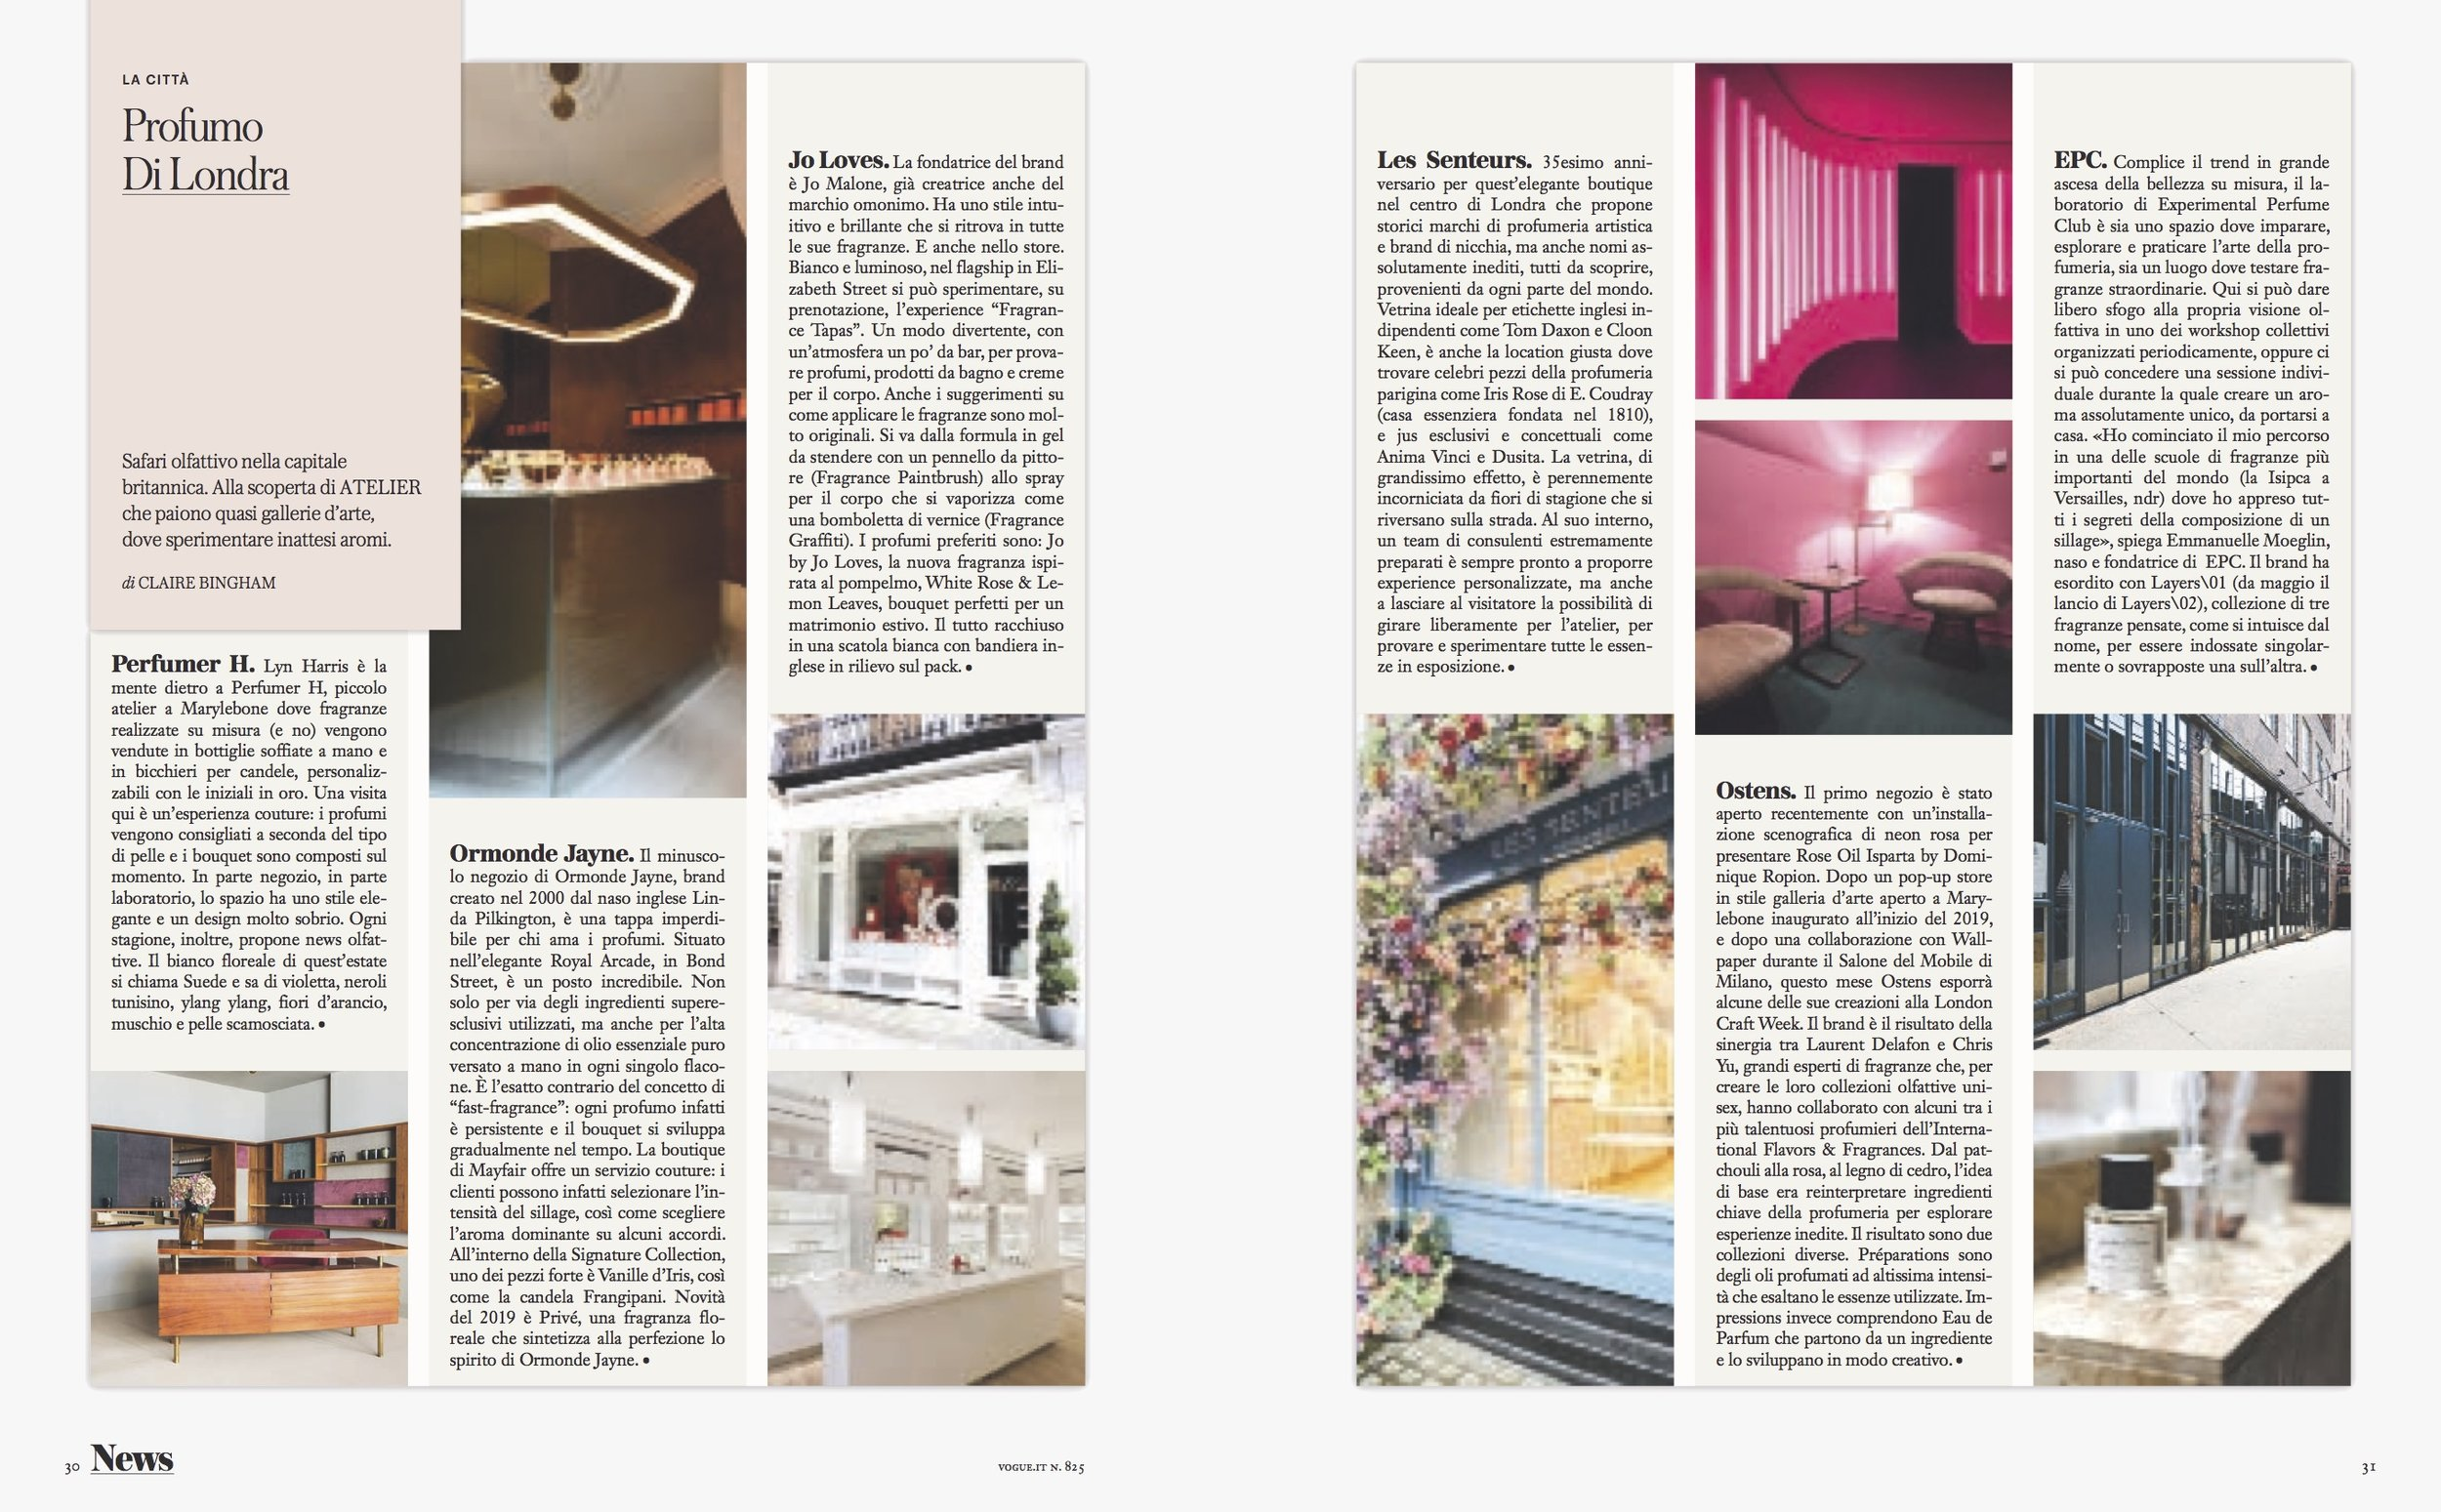 My article on London's perfume hot spots for Vogue Italia, May 2019